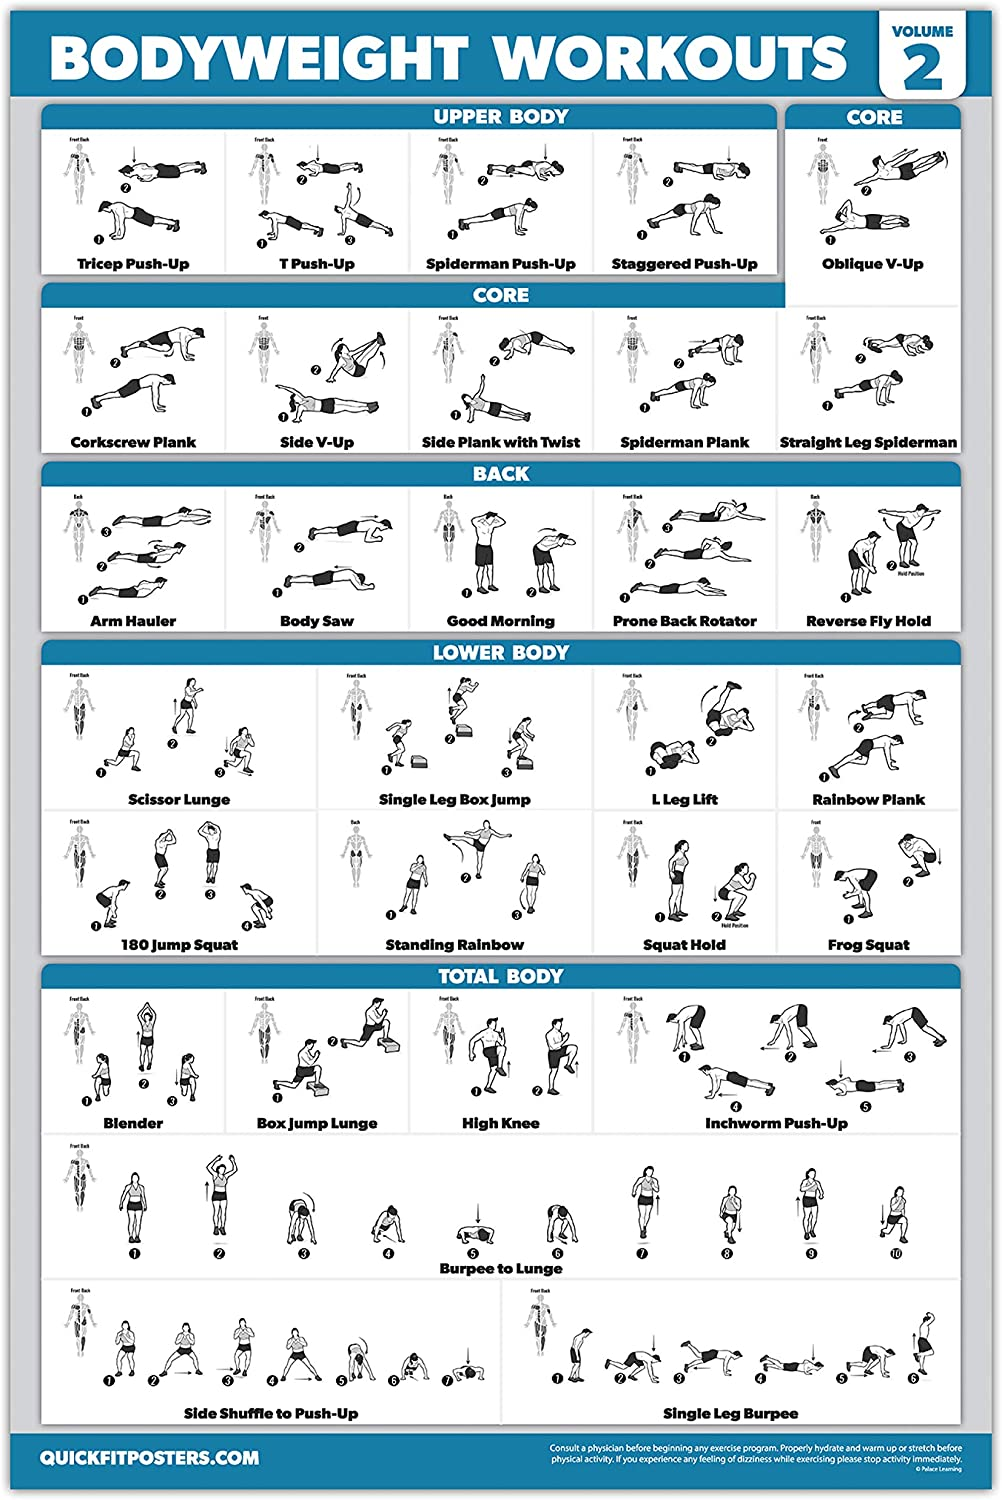 Set of 3 Workout Charts Suspension Exercises Poster Set Palace Learning 3 Pack Bodyweight Workout Posters Volume 1 /& 2